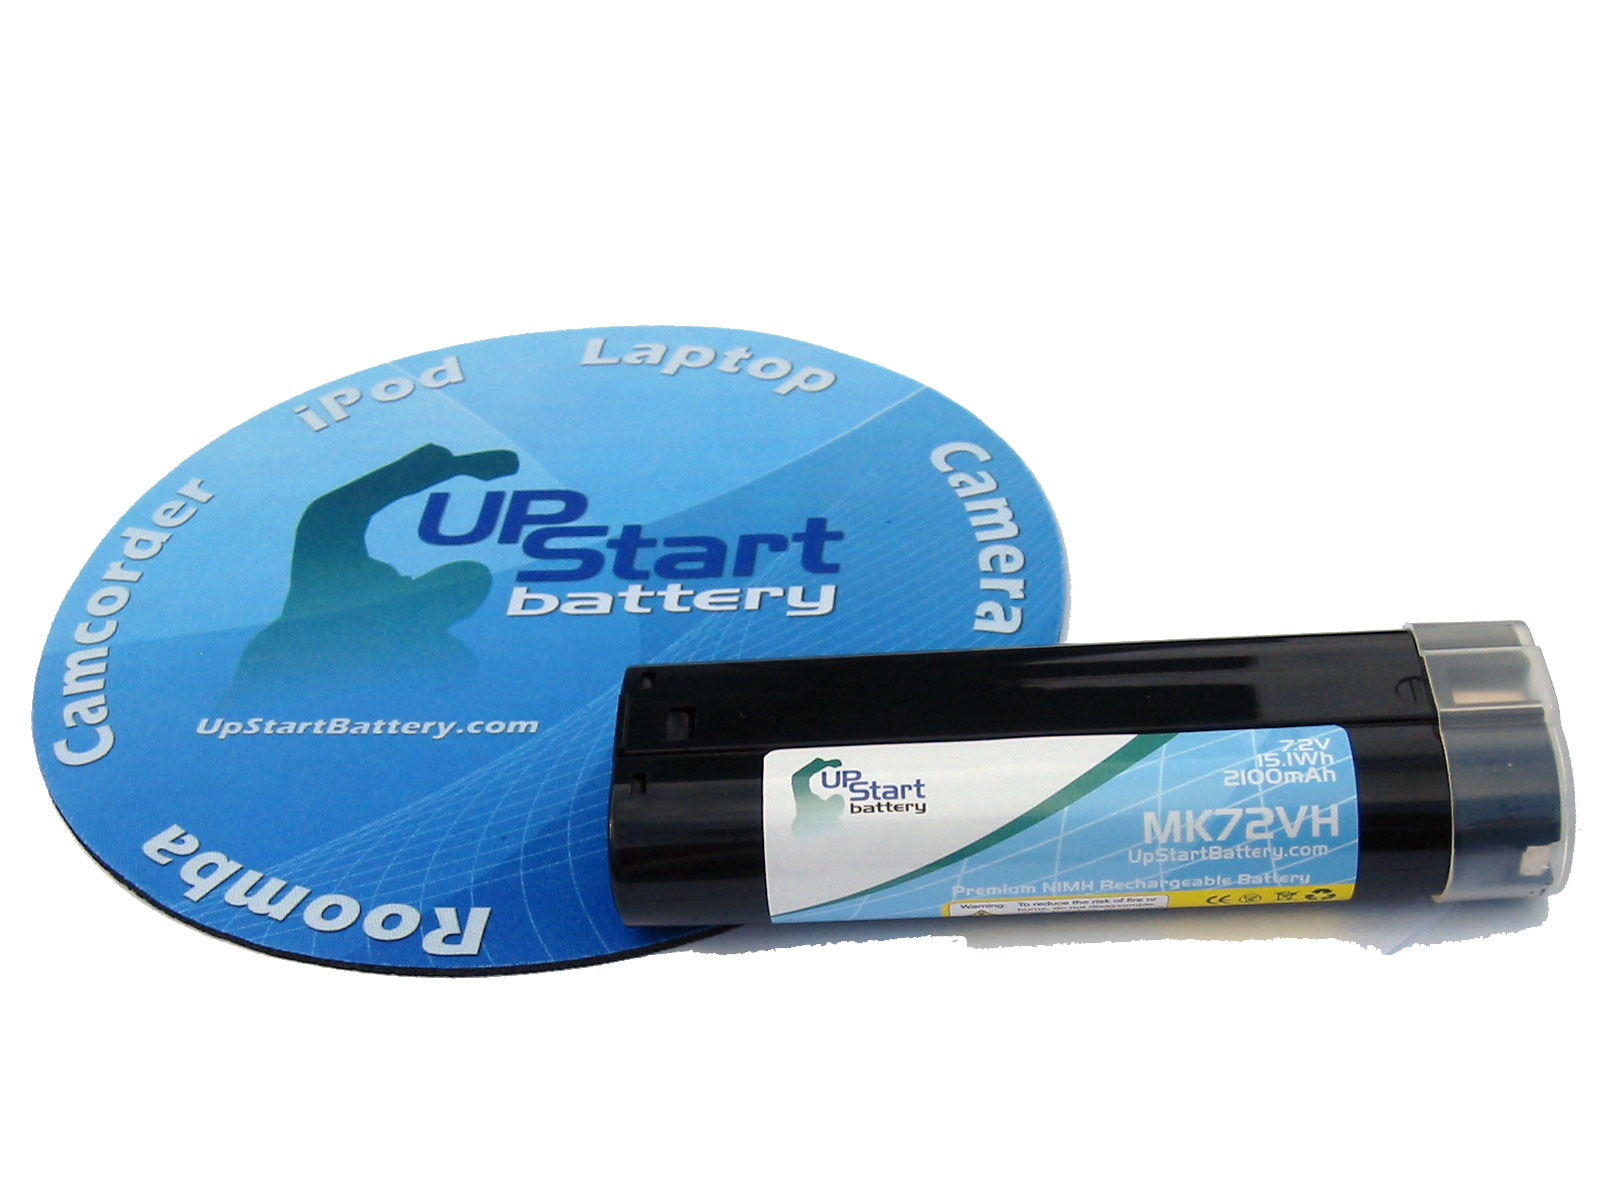 UpStart Battery Makita UH3070DW Replacement Power Tools Battery - 7.2V. 2100mAh. NIMH. at Sears.com